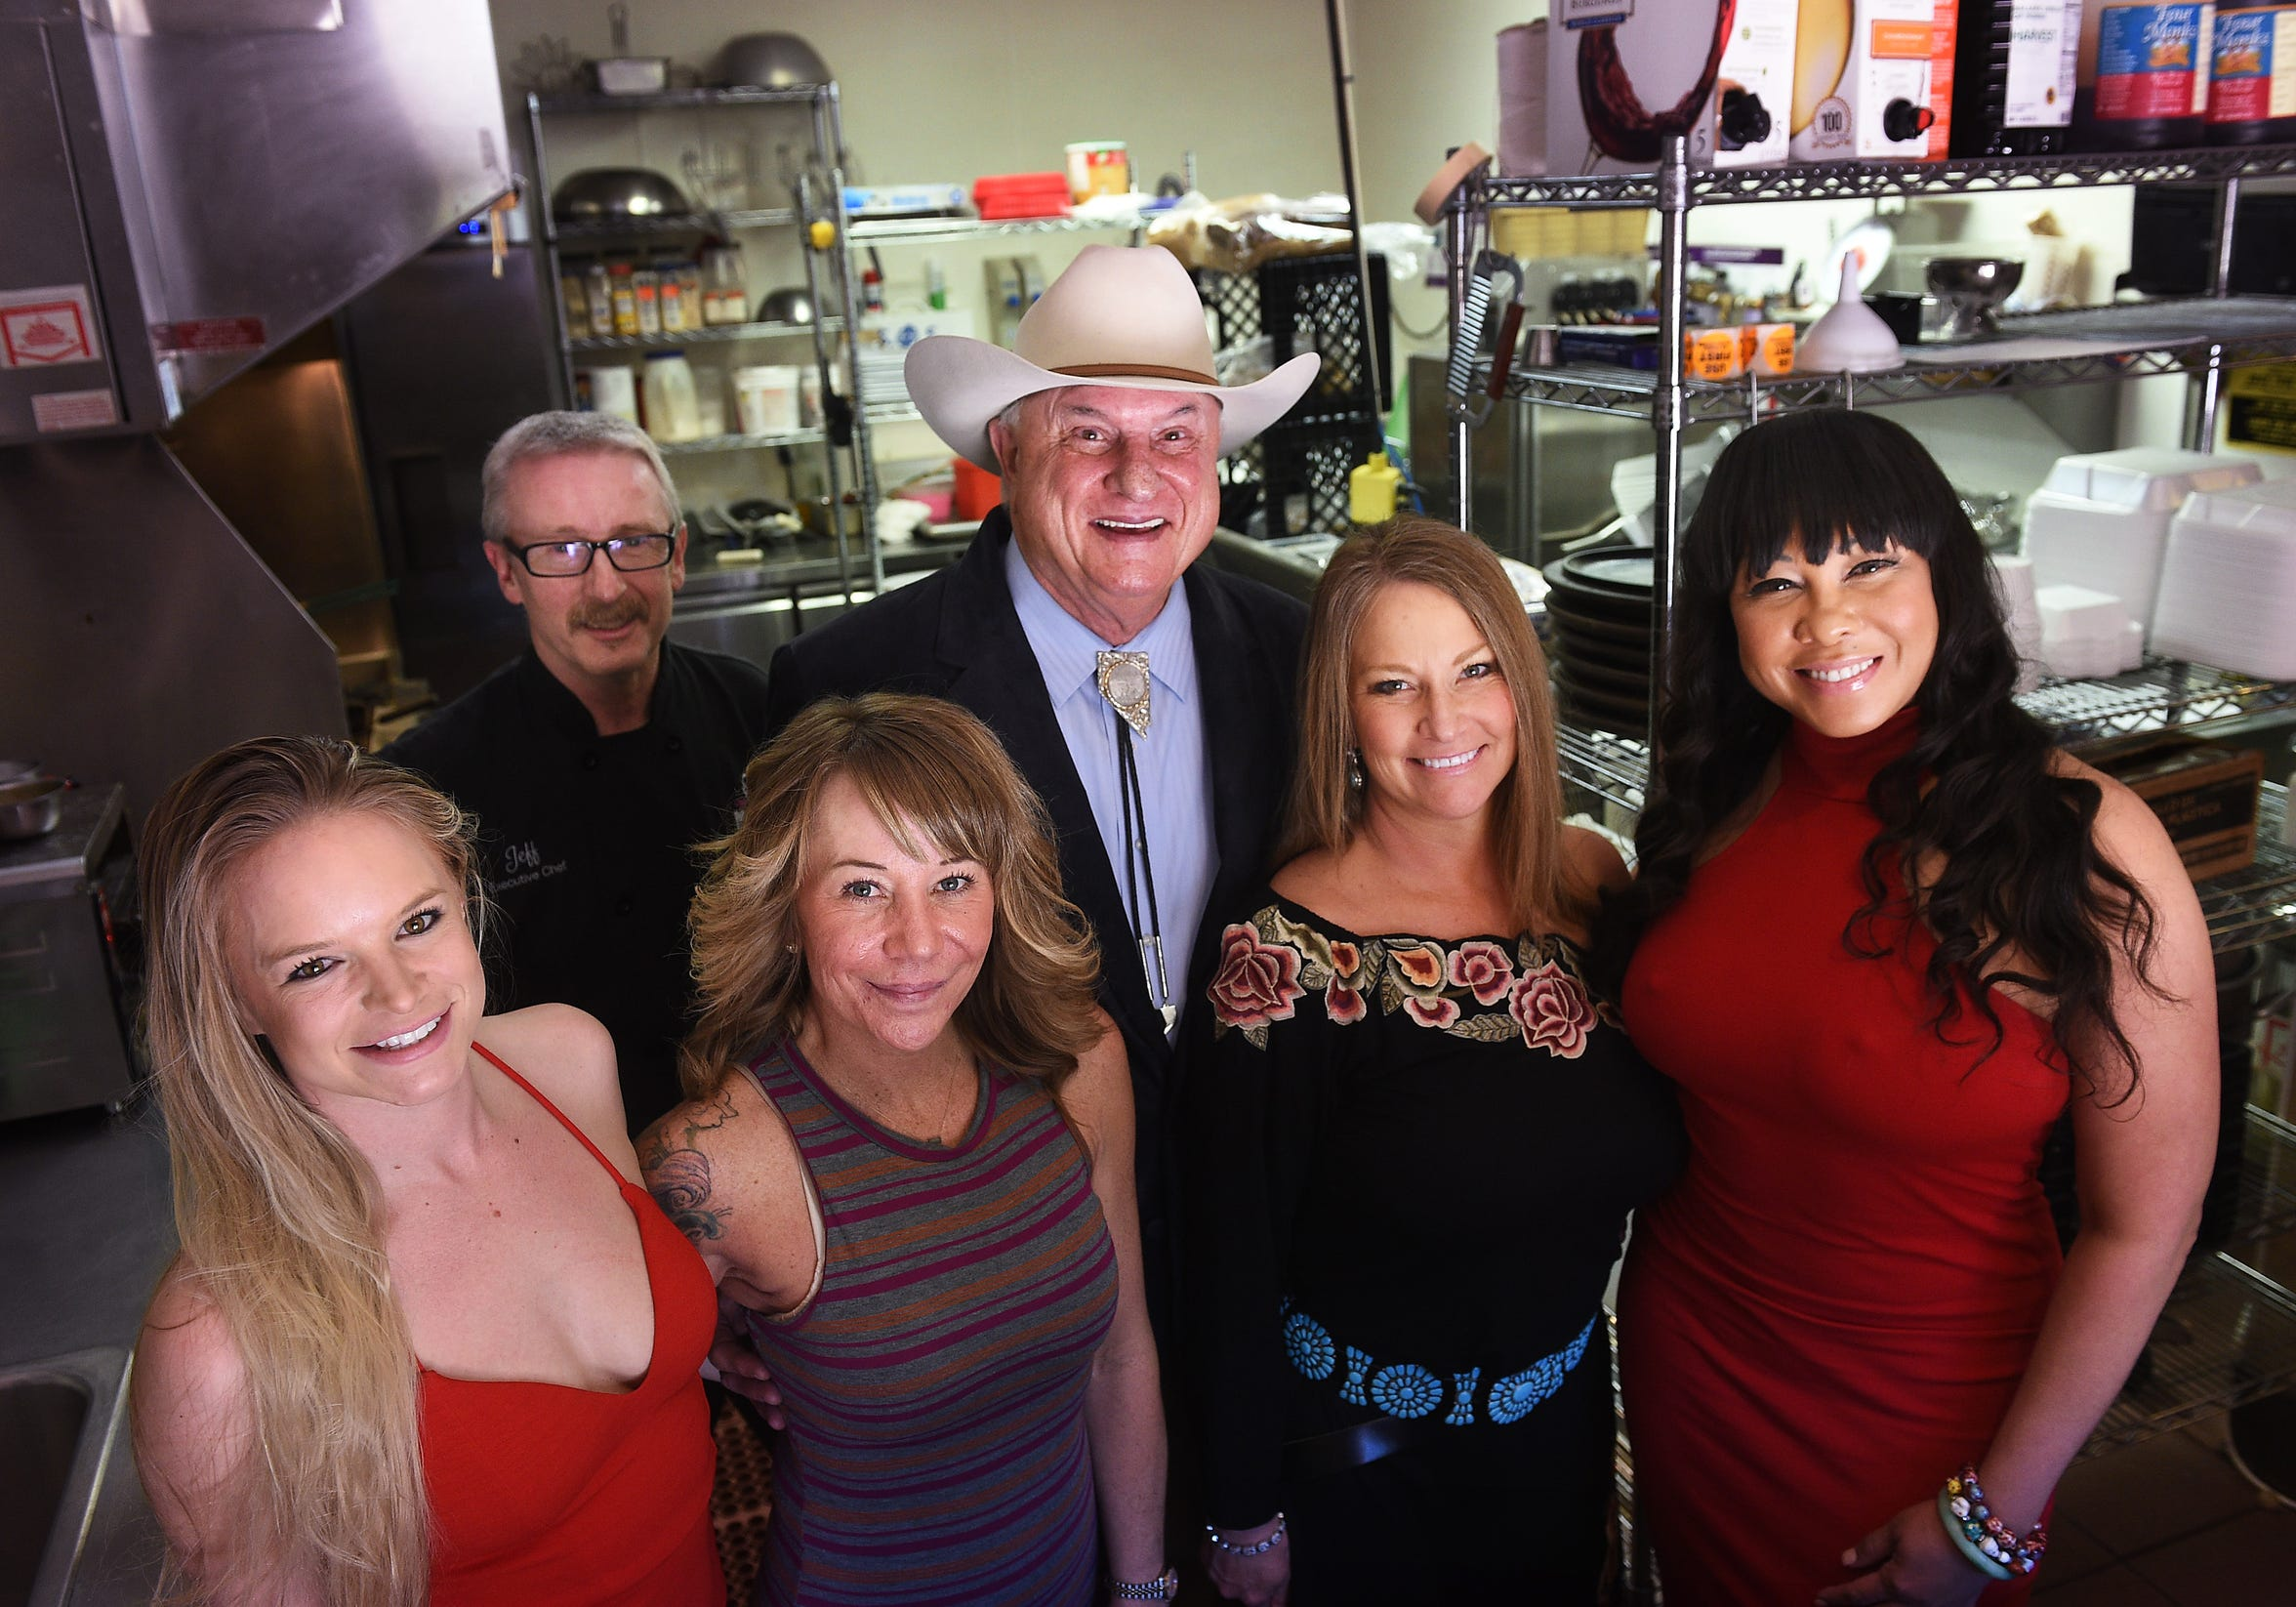 Mustang Ranch owner Lance Gilman, back middle, poses for a portrait with, from left, working lady Jasper Dayton, Chef Jeff Probus, madam Tara Adkins, madam Jennifer Barnes and working lady Ayana in the kitchen of the brothel resort about 15 miles east of Reno.